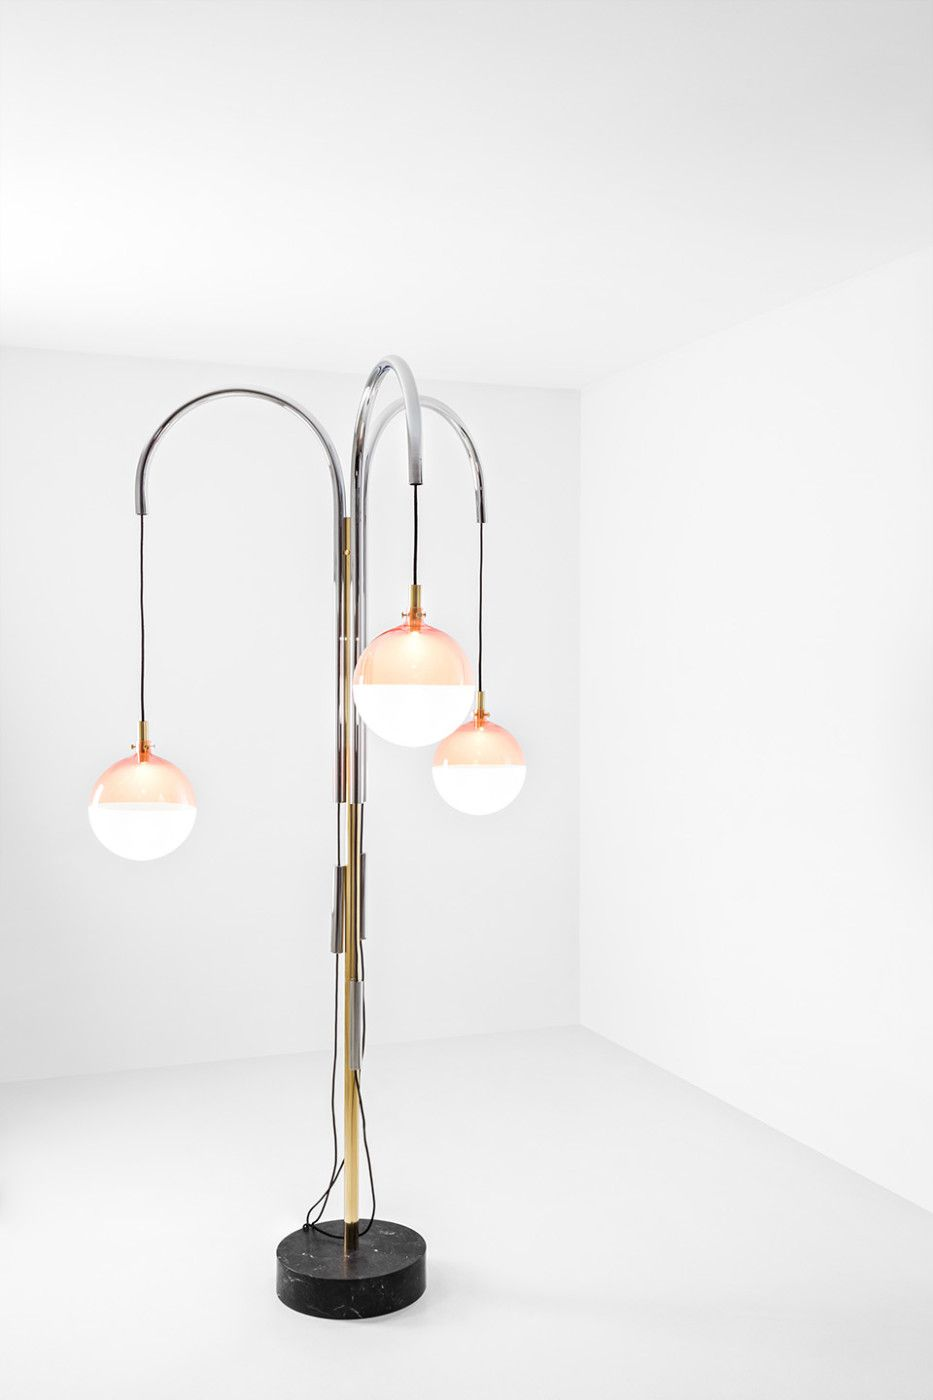 Pin On Luminaires Interieur Lampe A Poser